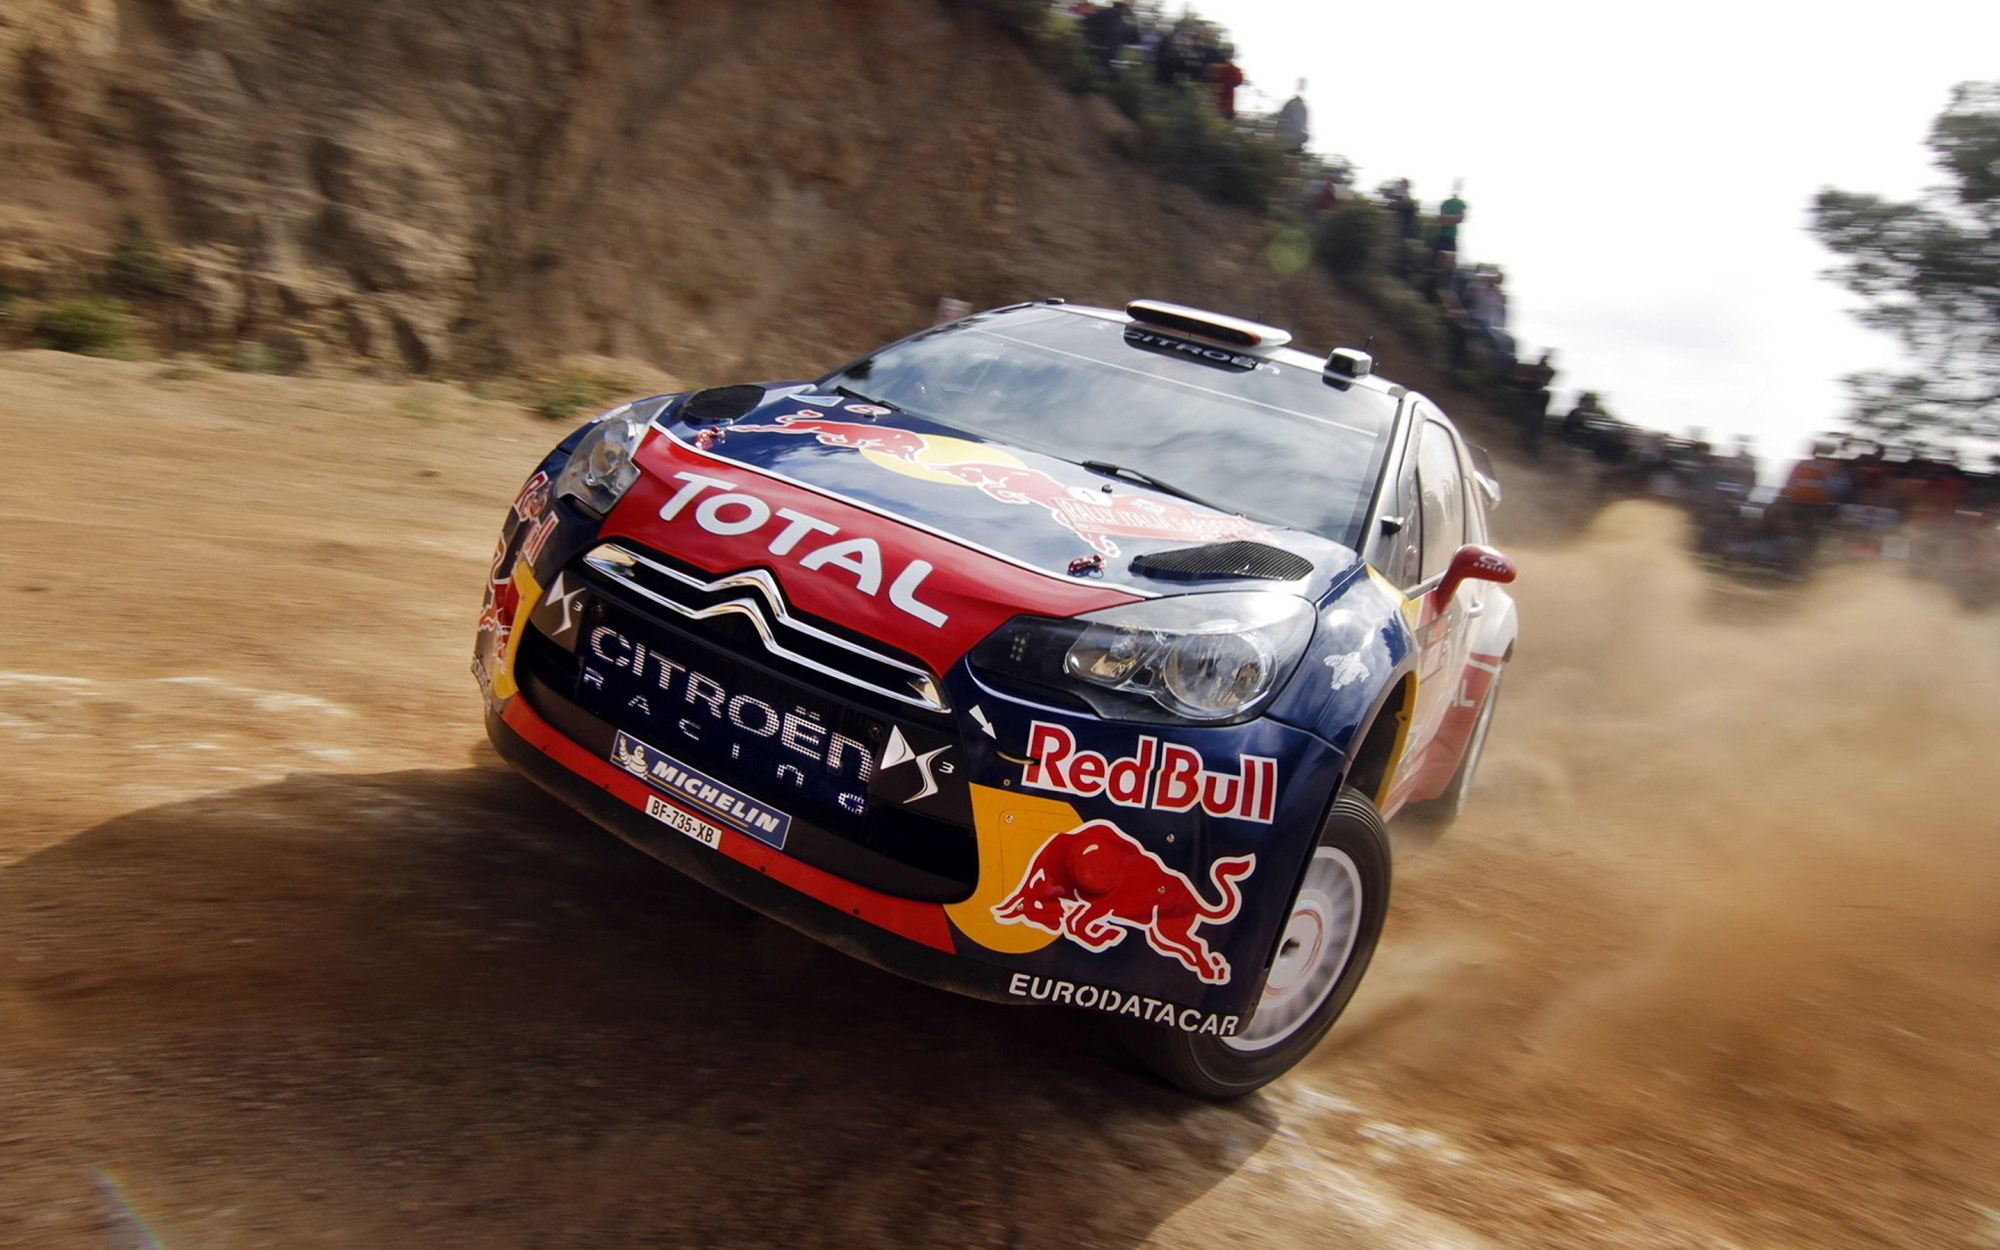 sebastien loeb rally evo artwork